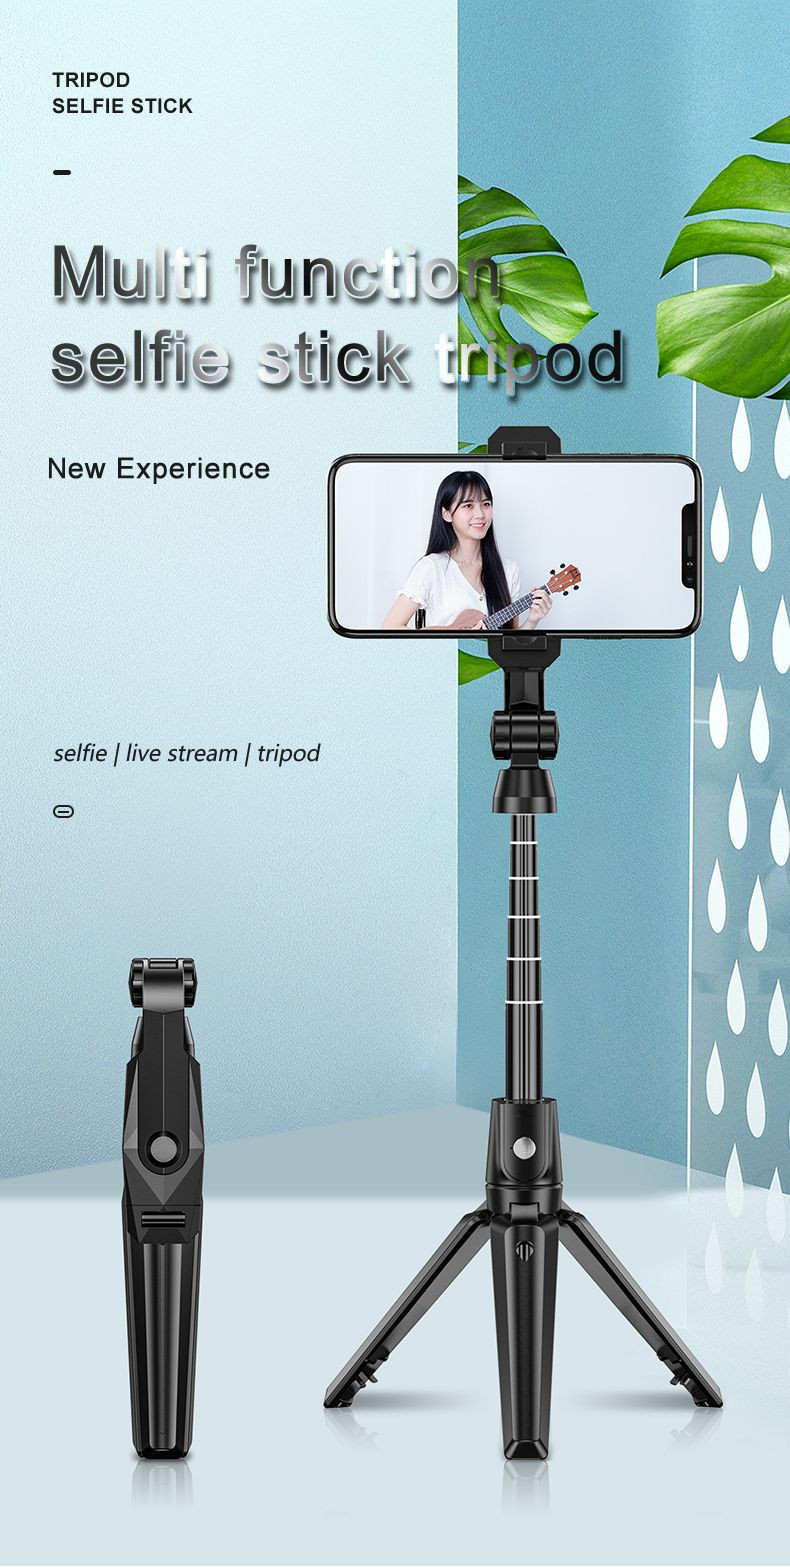 Import Multi Function Selfie Stick Tripod from China